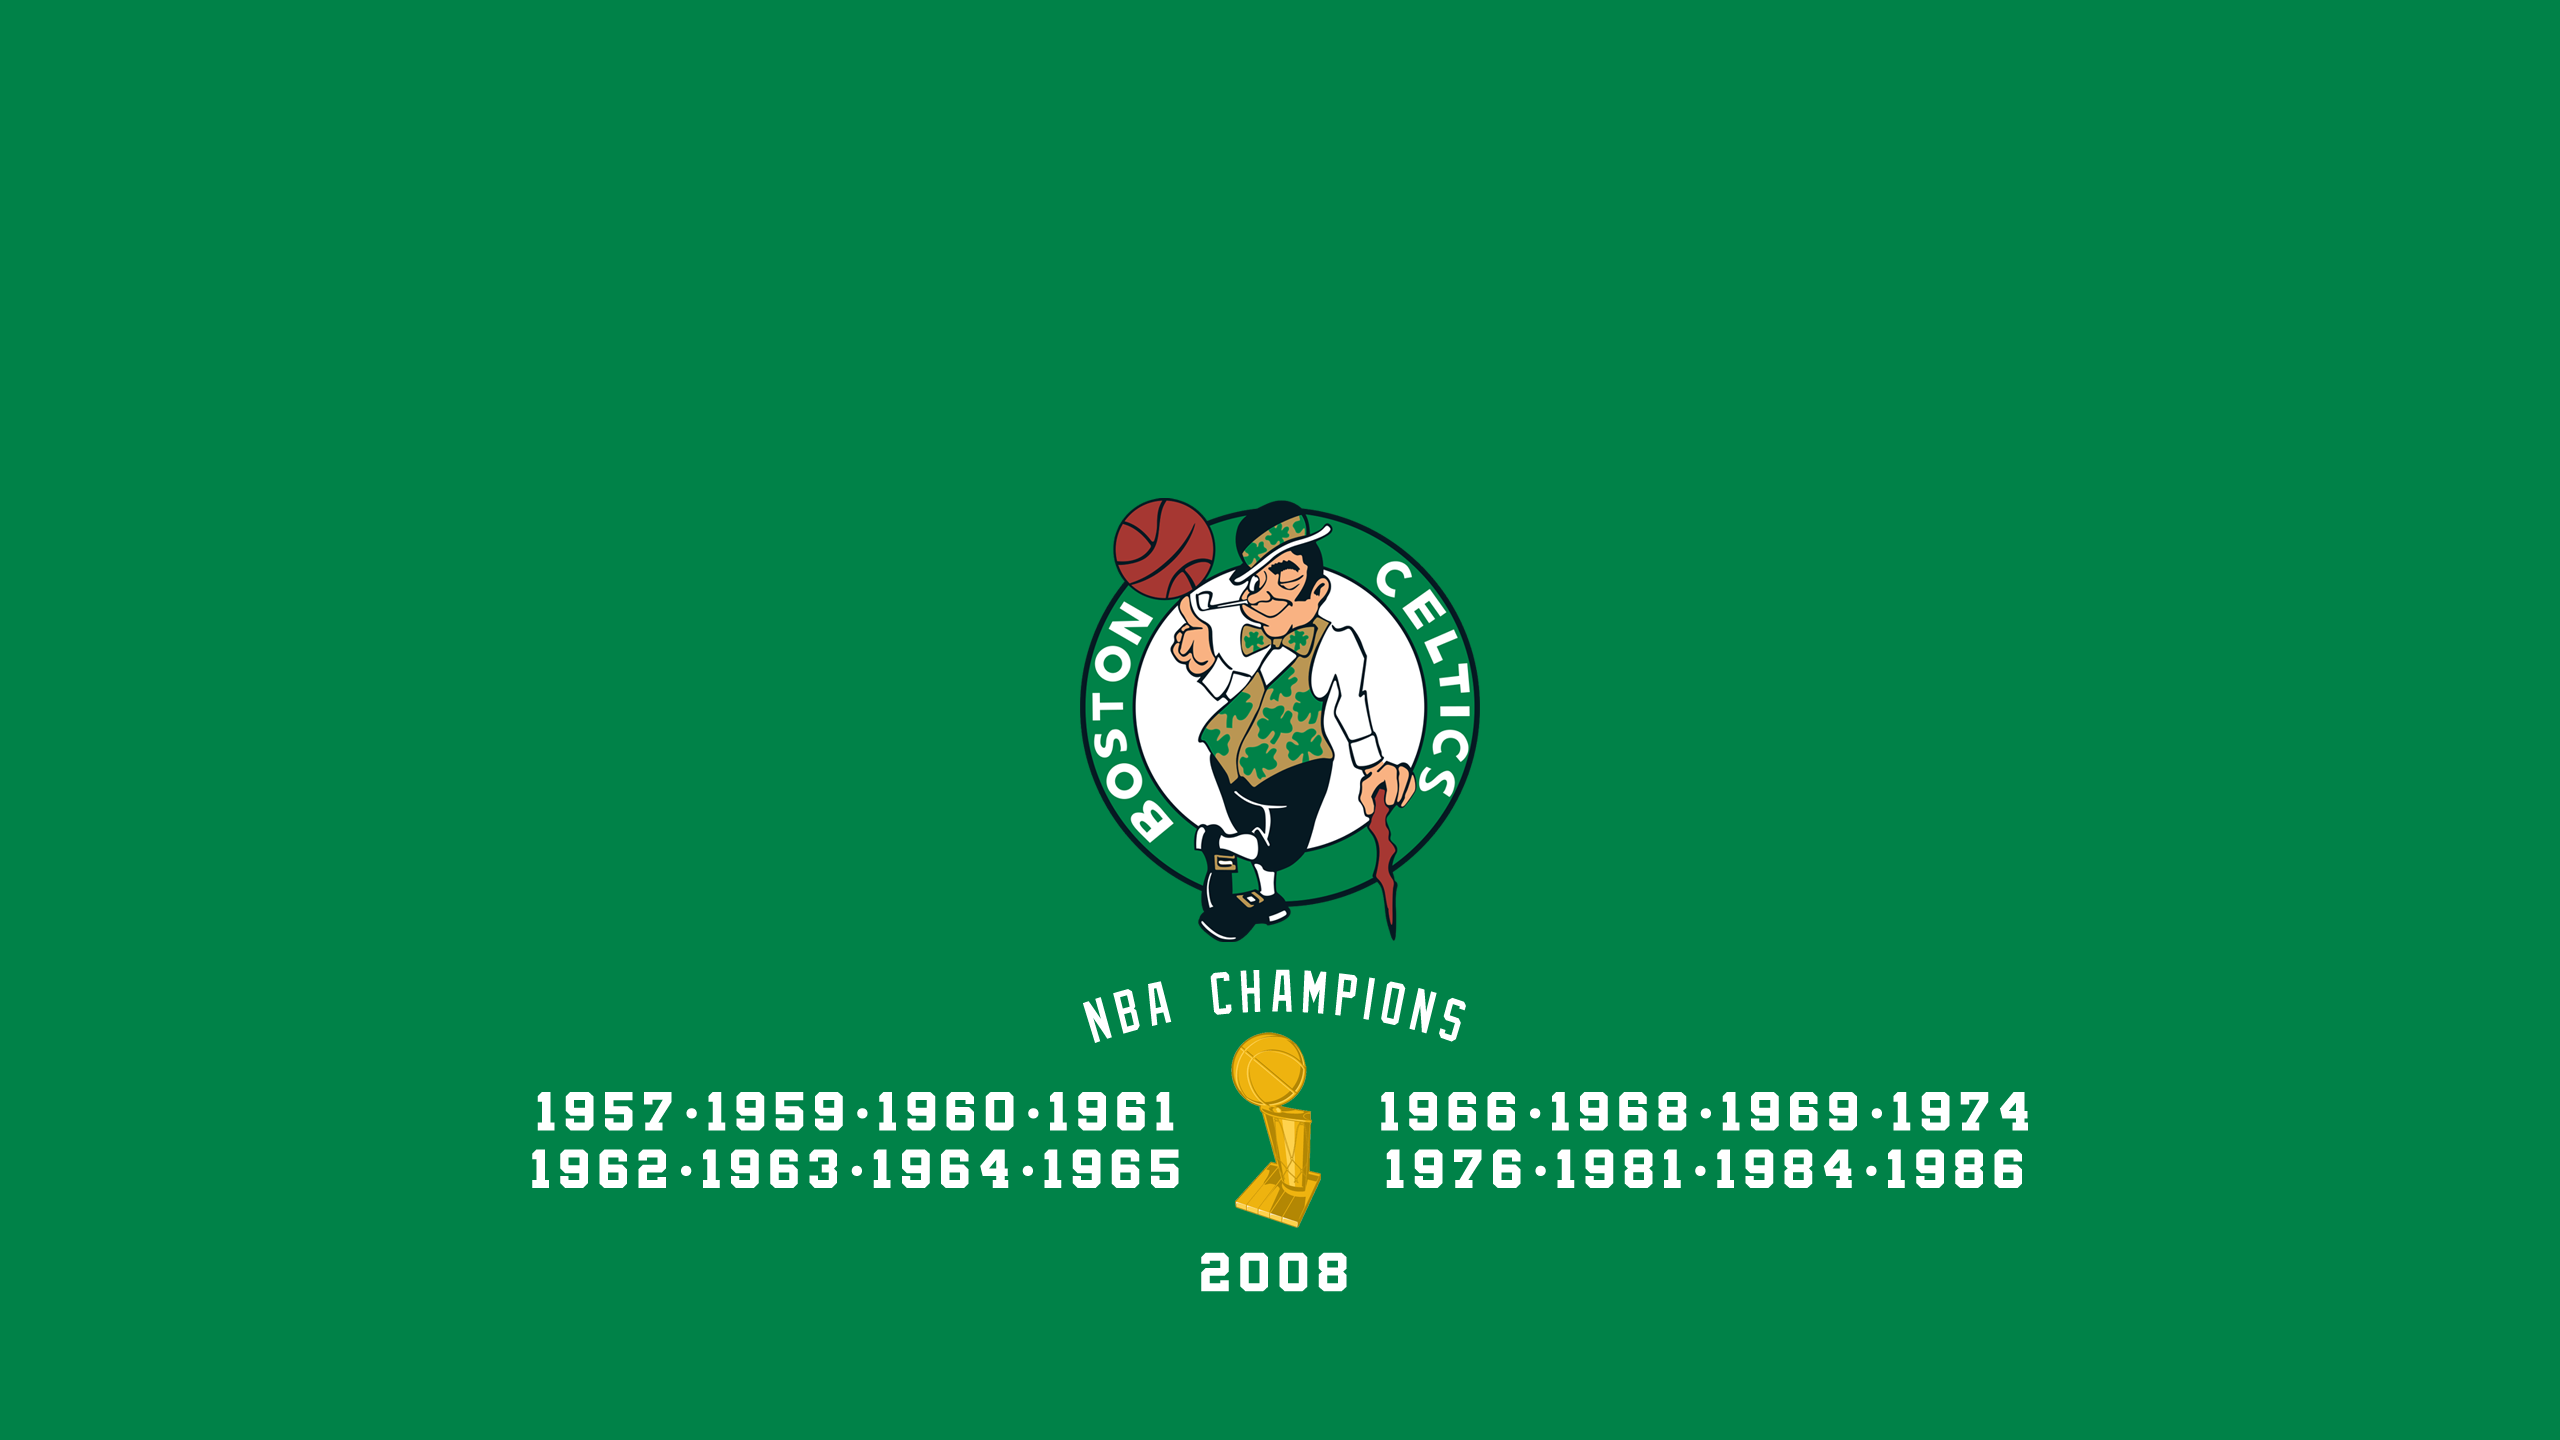 Boston Celtics - NBA Champs